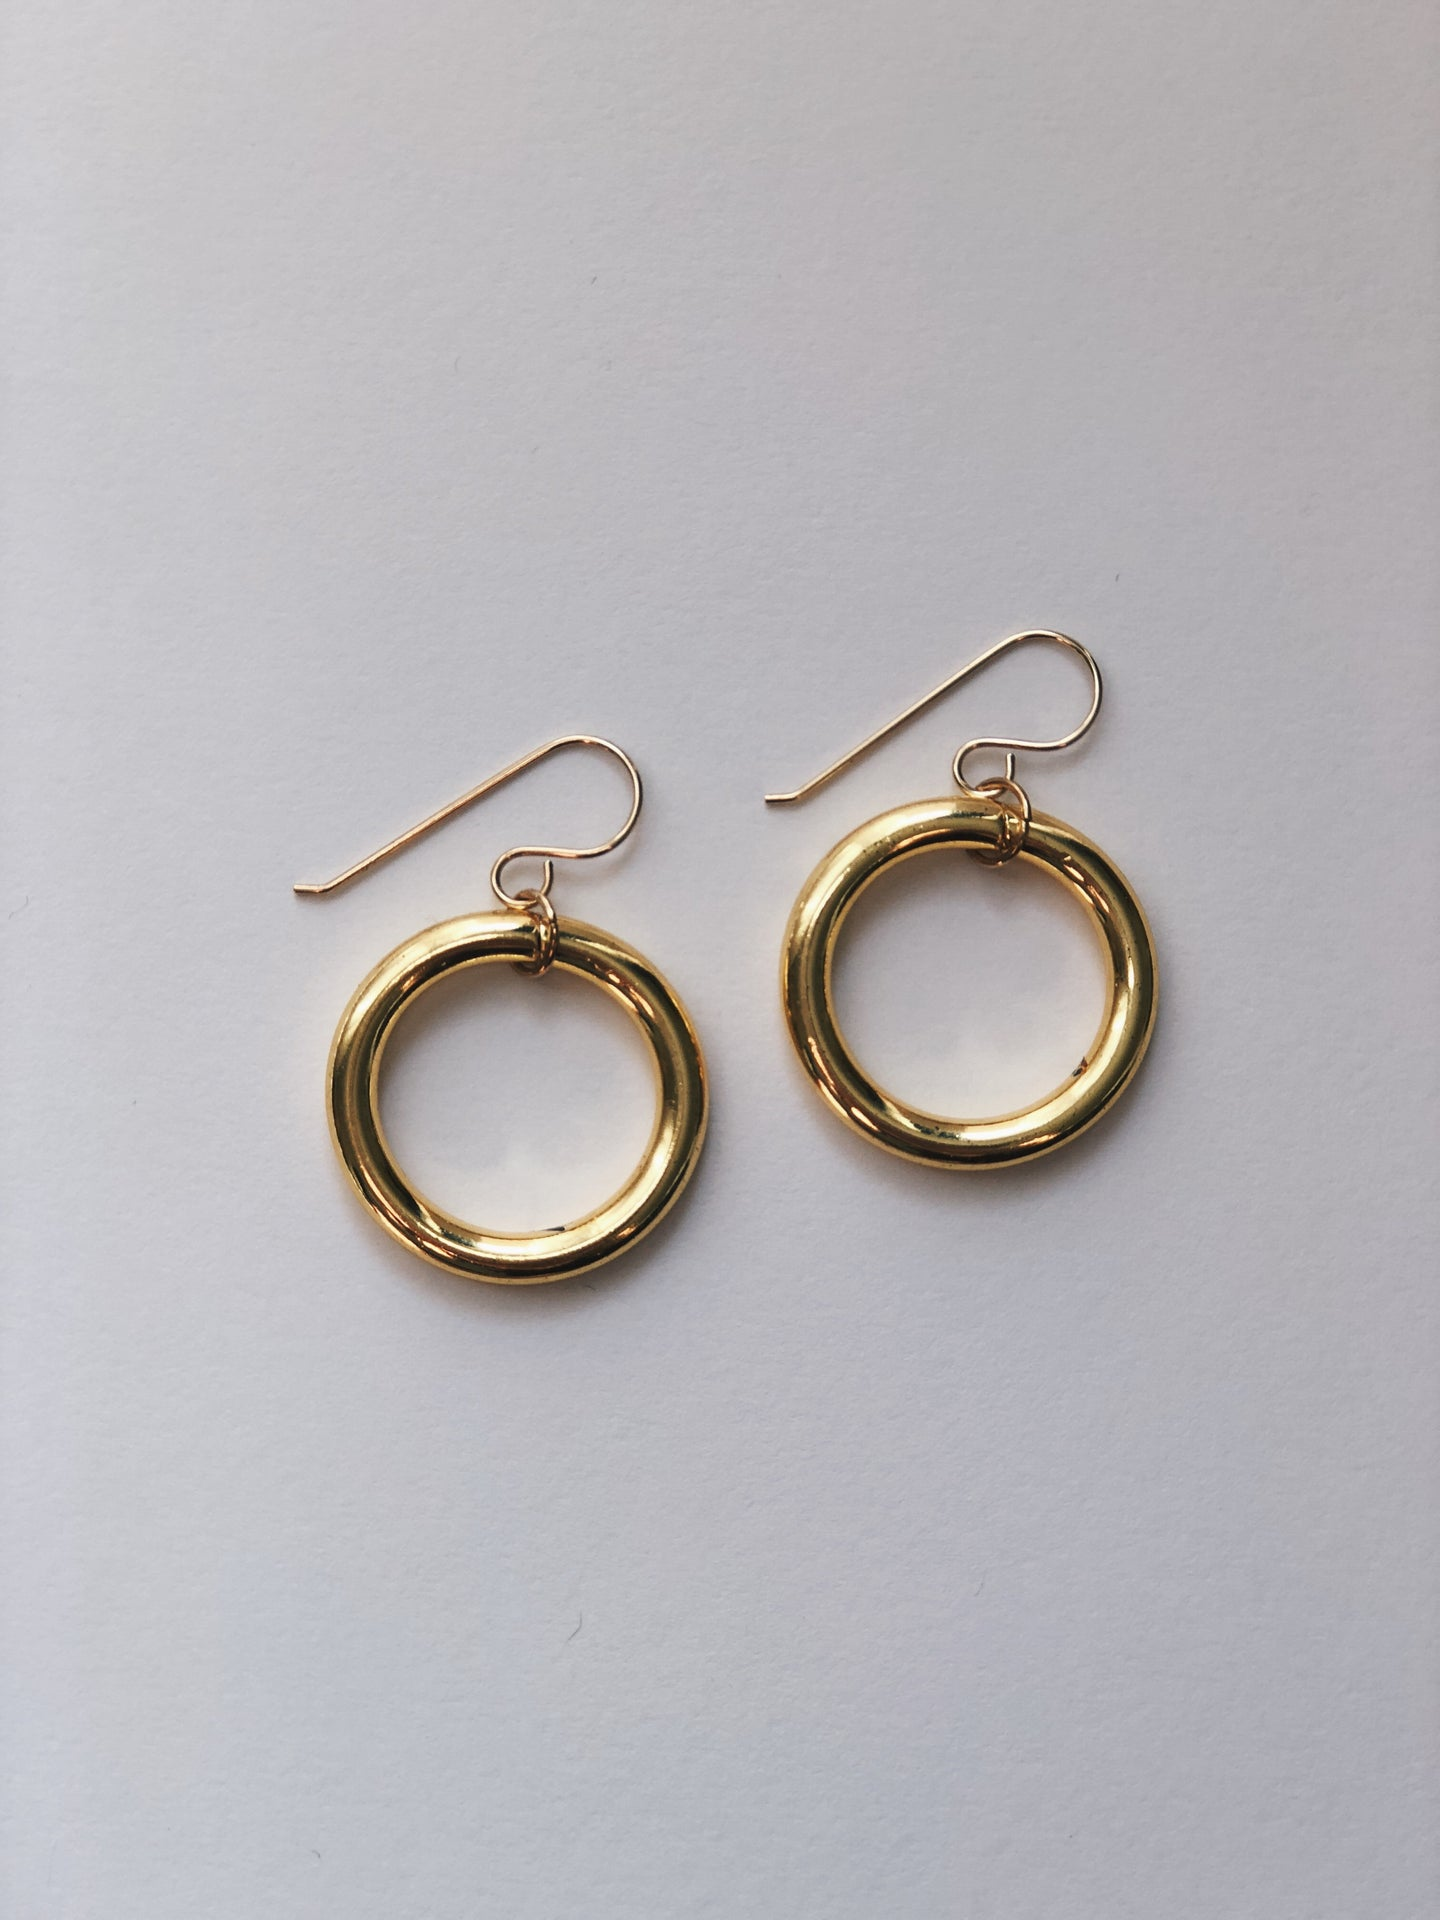 The Jorde Earrings